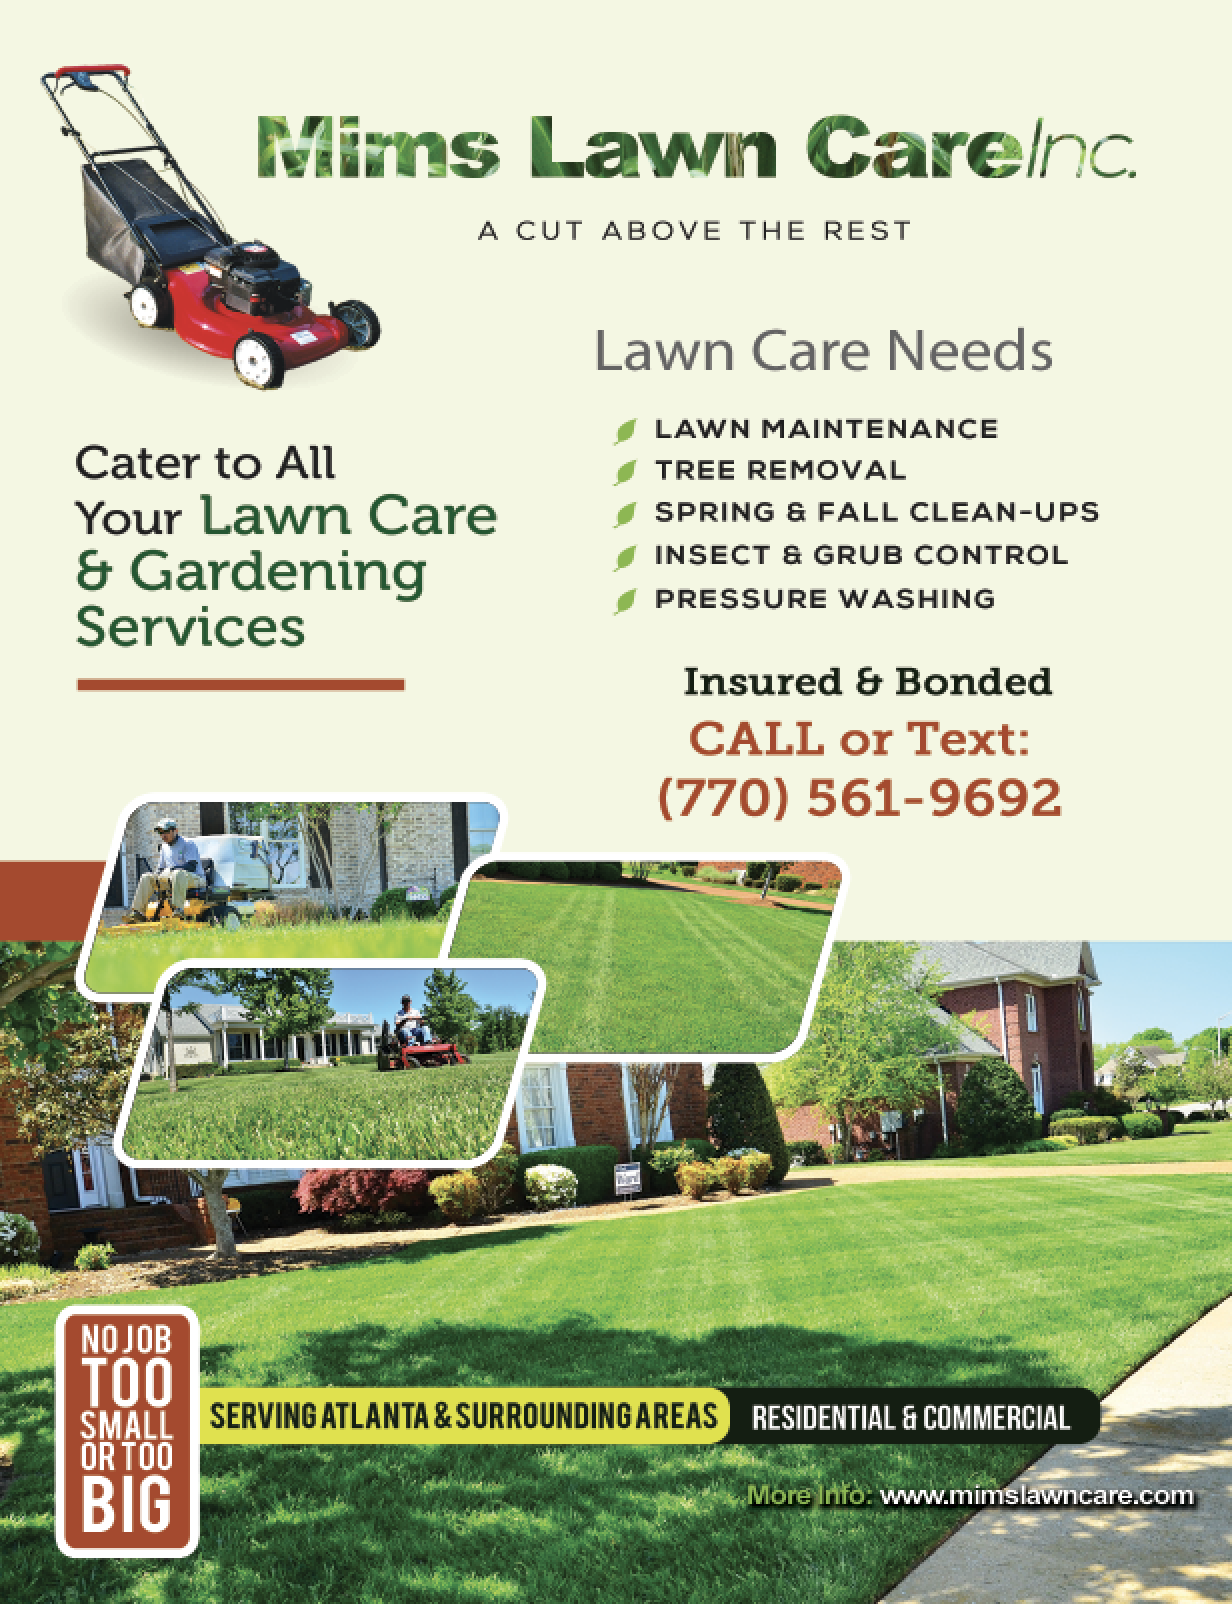 get lawn care service in atlanta ga from mims lawn care